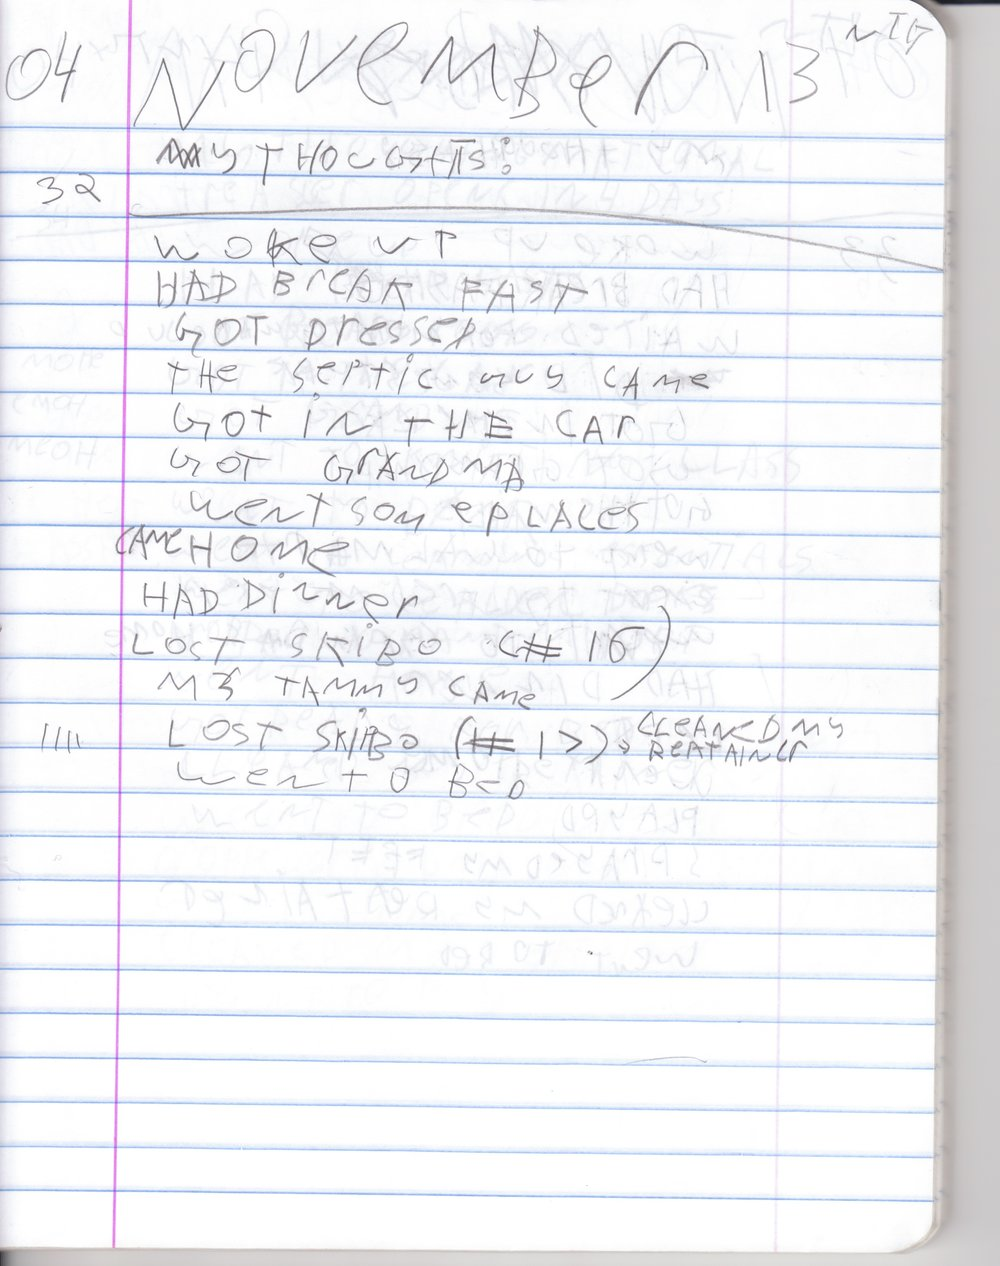 my first diary-log_Page_035.jpg